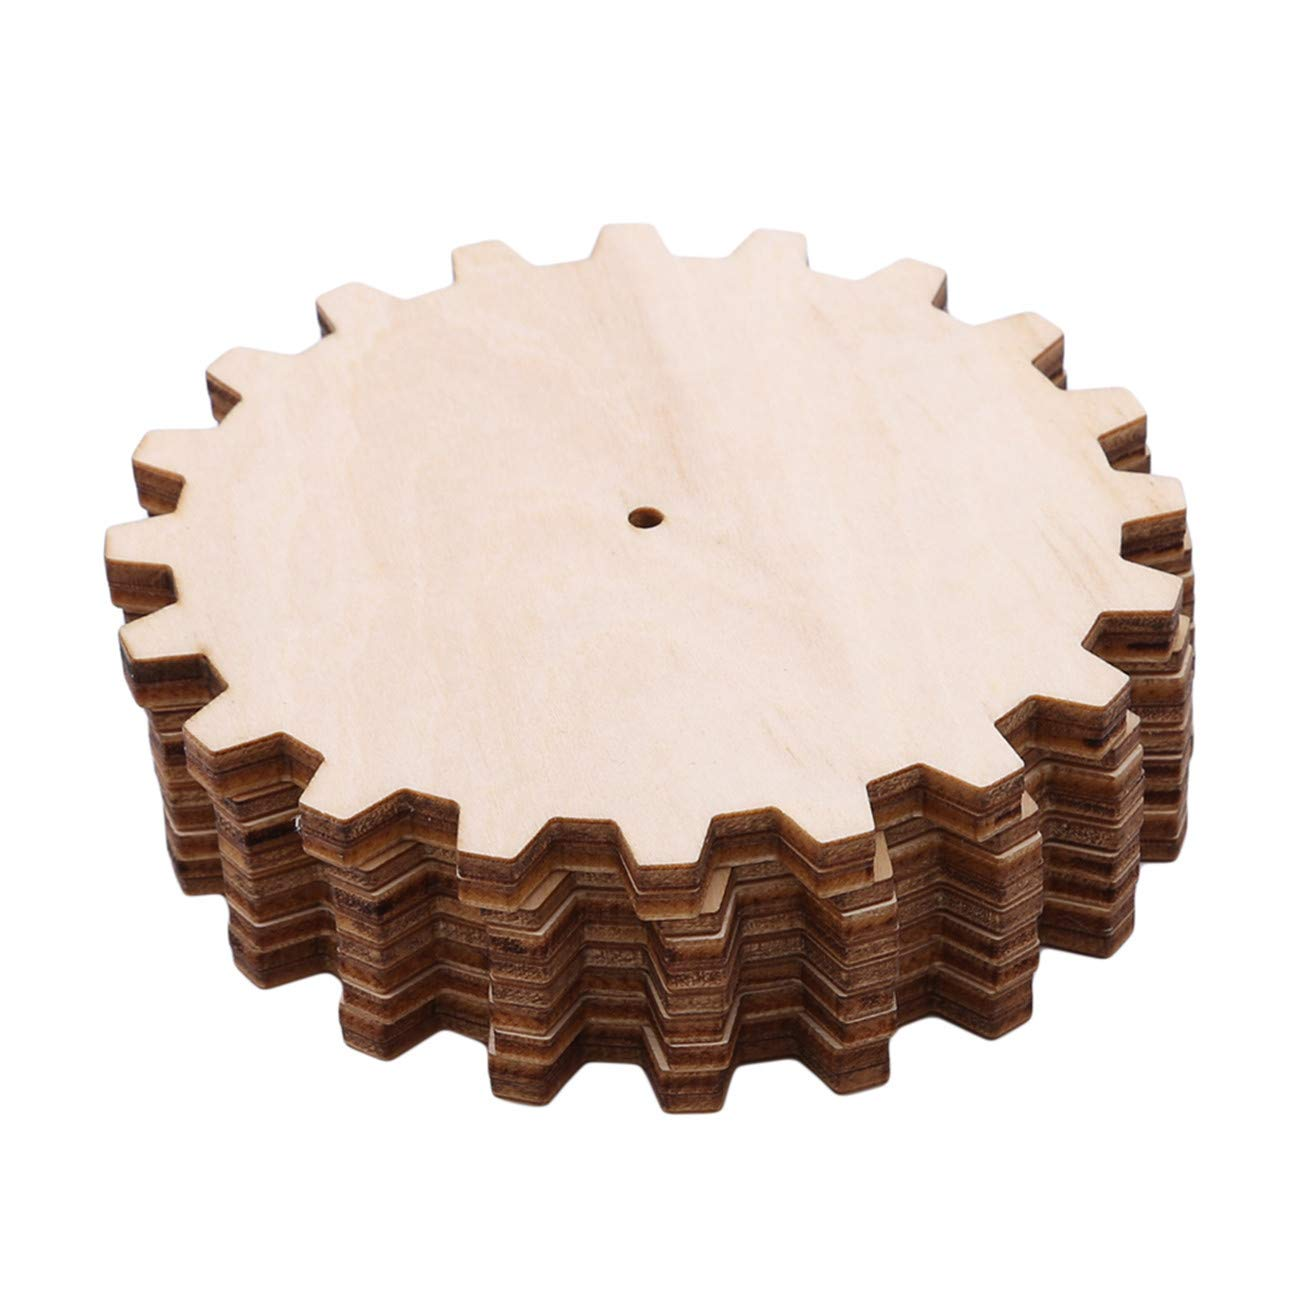 Bigsweety 10pcs Unfinished Wooden Gear Puzzle Hand Drawn Doodle Accessories for Board Game Pieces Arts Crafts Projects Ornaments #1